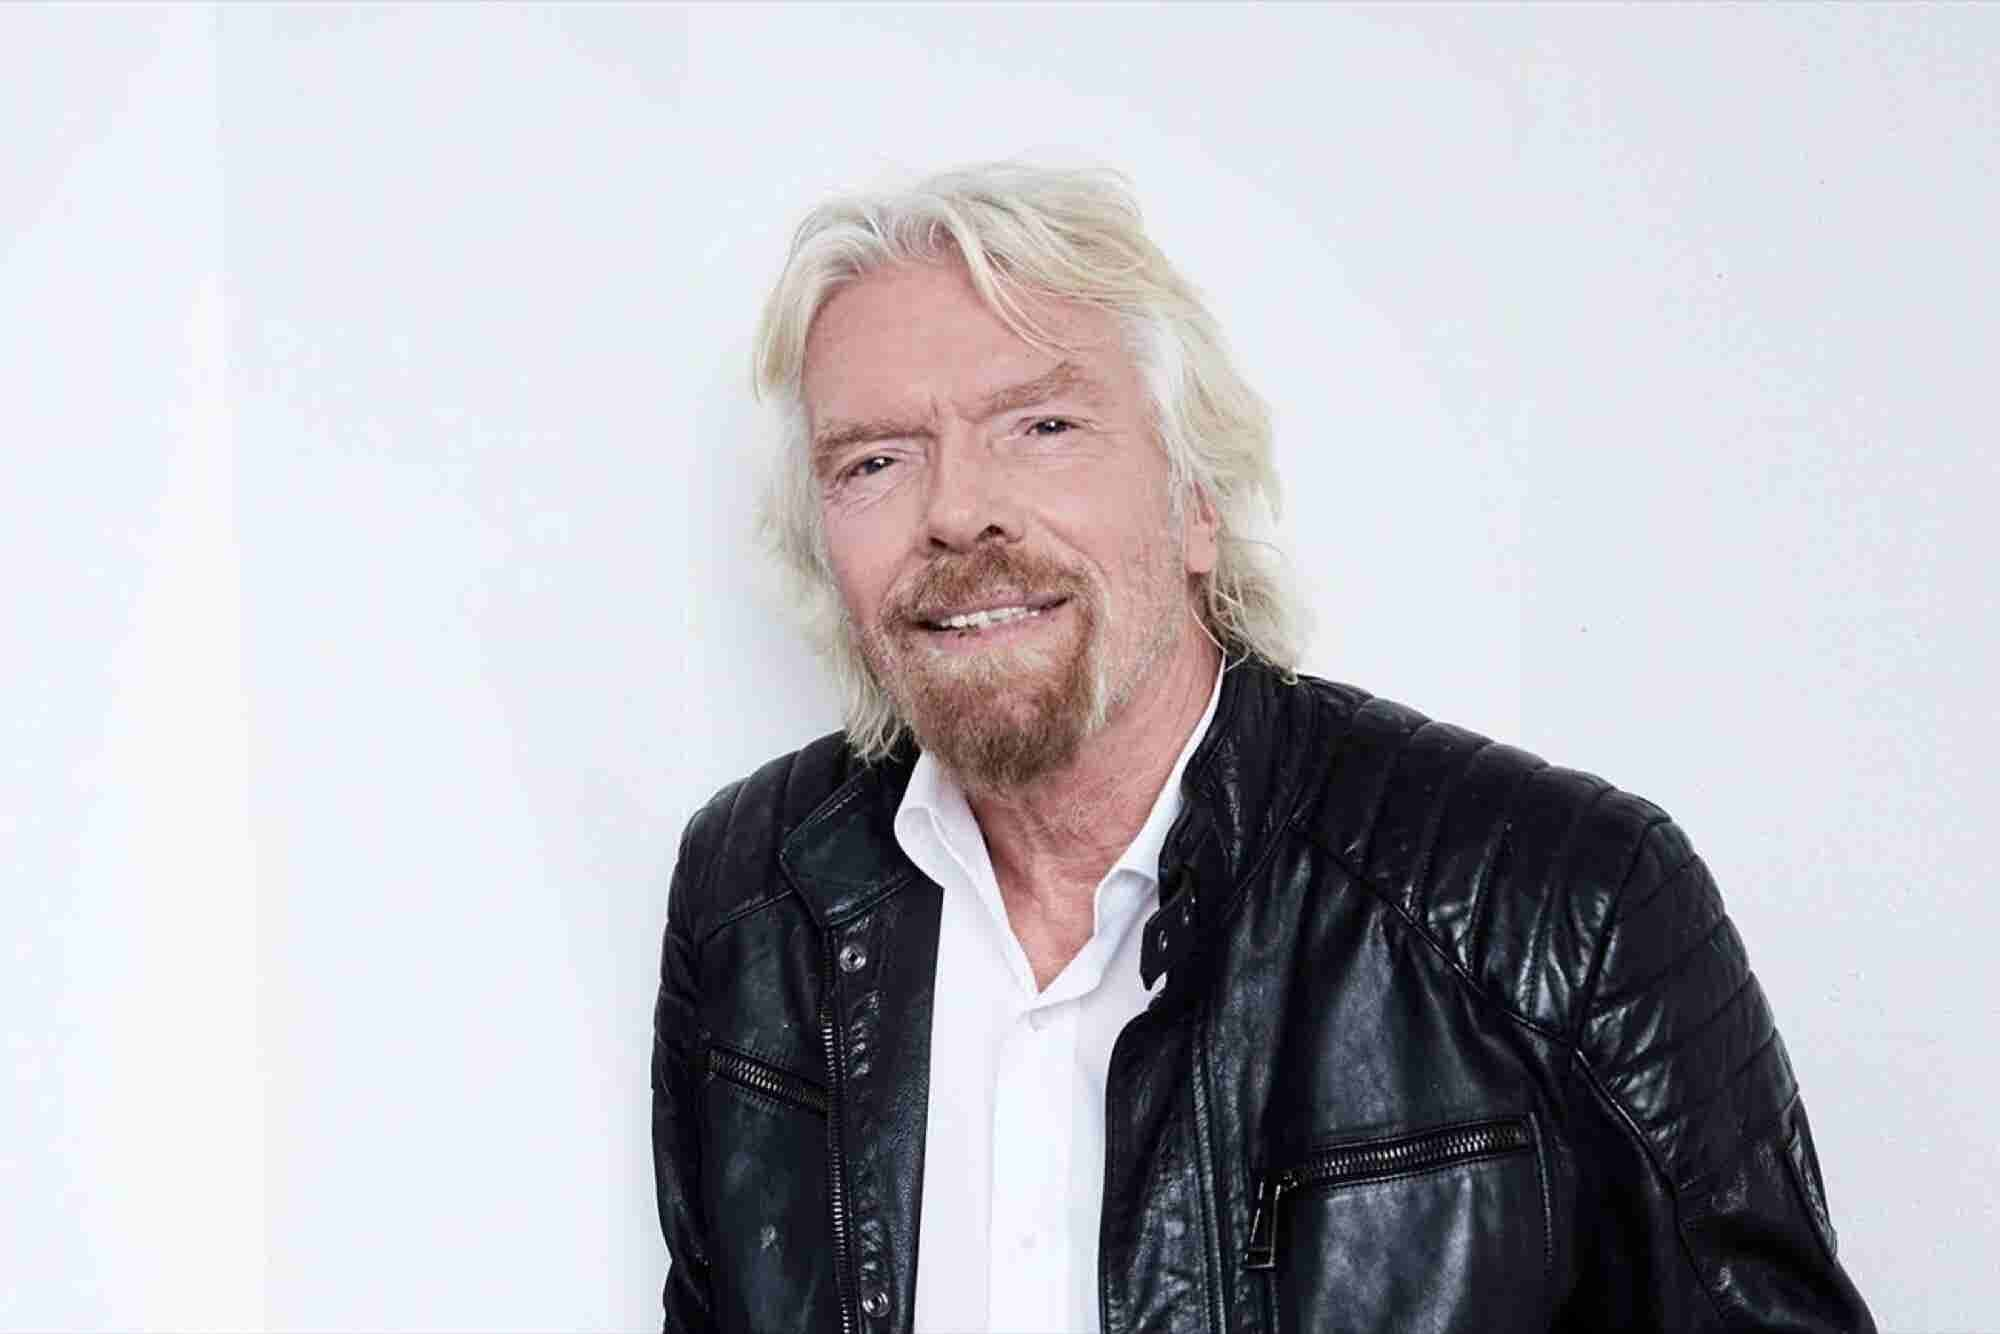 Billionaire Richard Branson Credits To-Do Lists as a Key to His Success